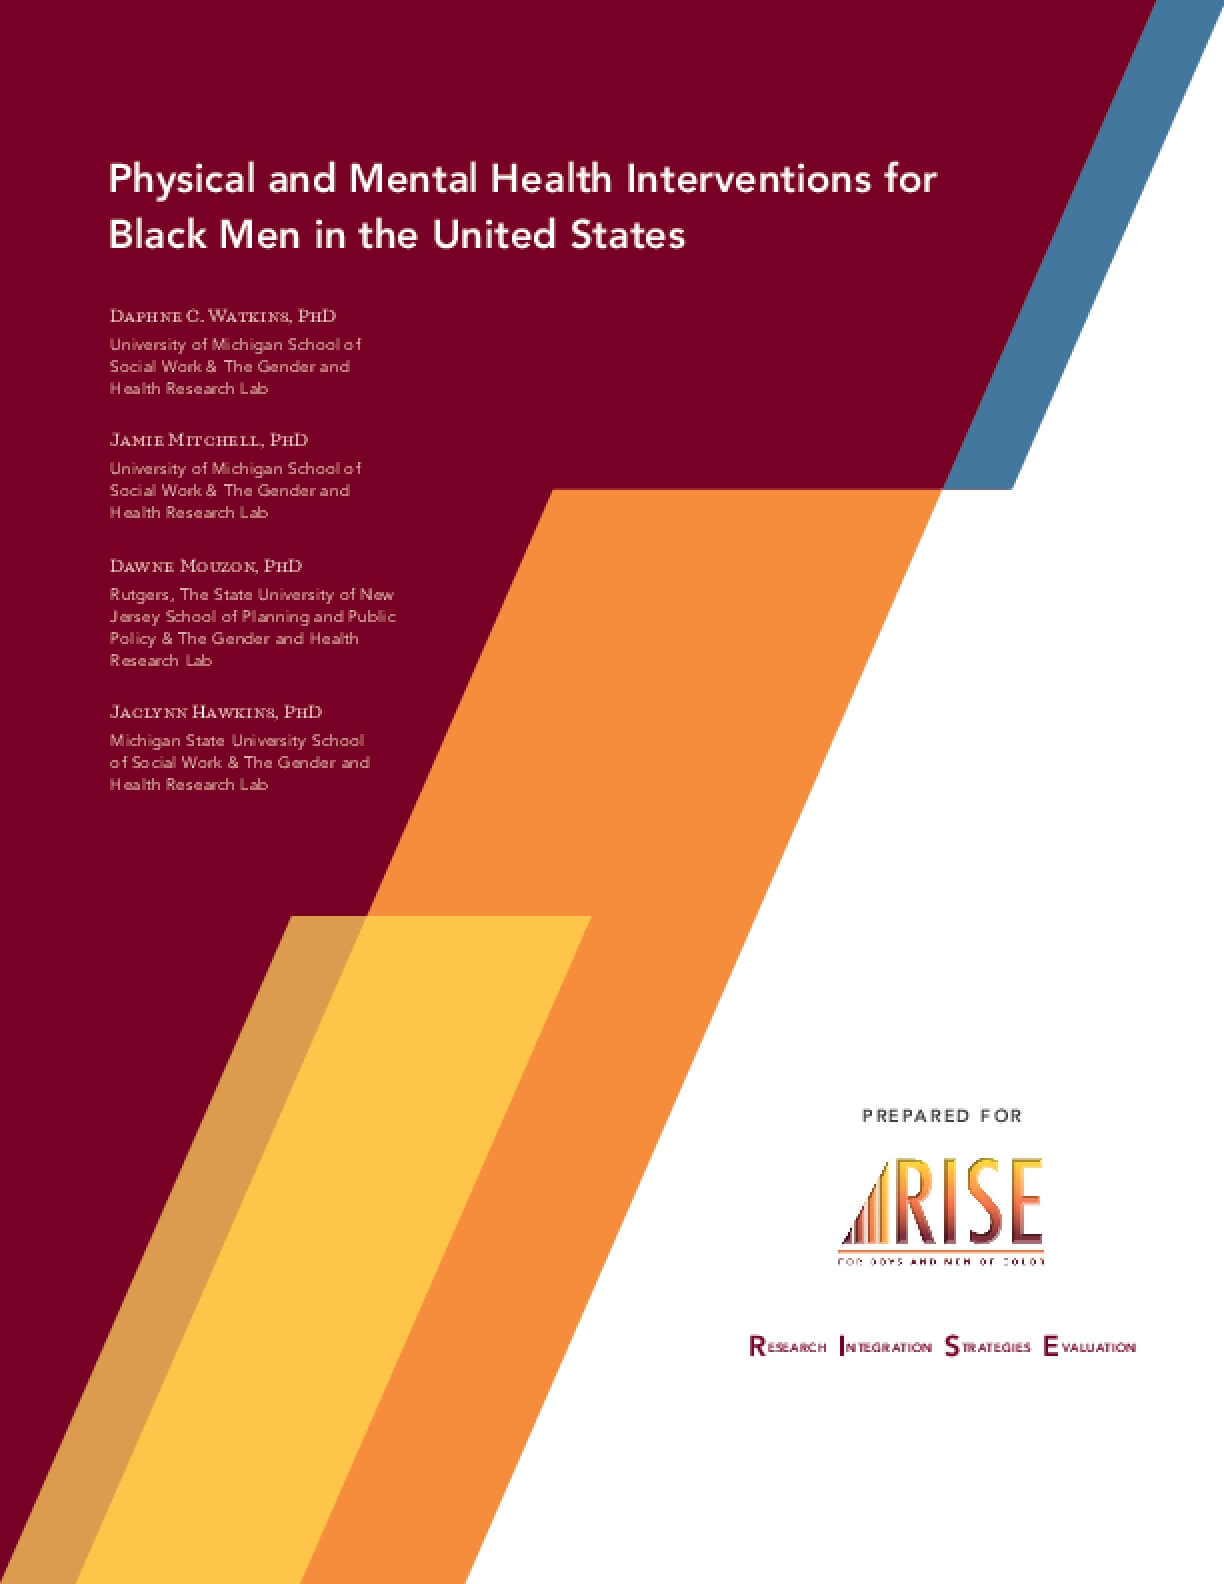 Physical and Mental Health Interventions for Black Men in the United States